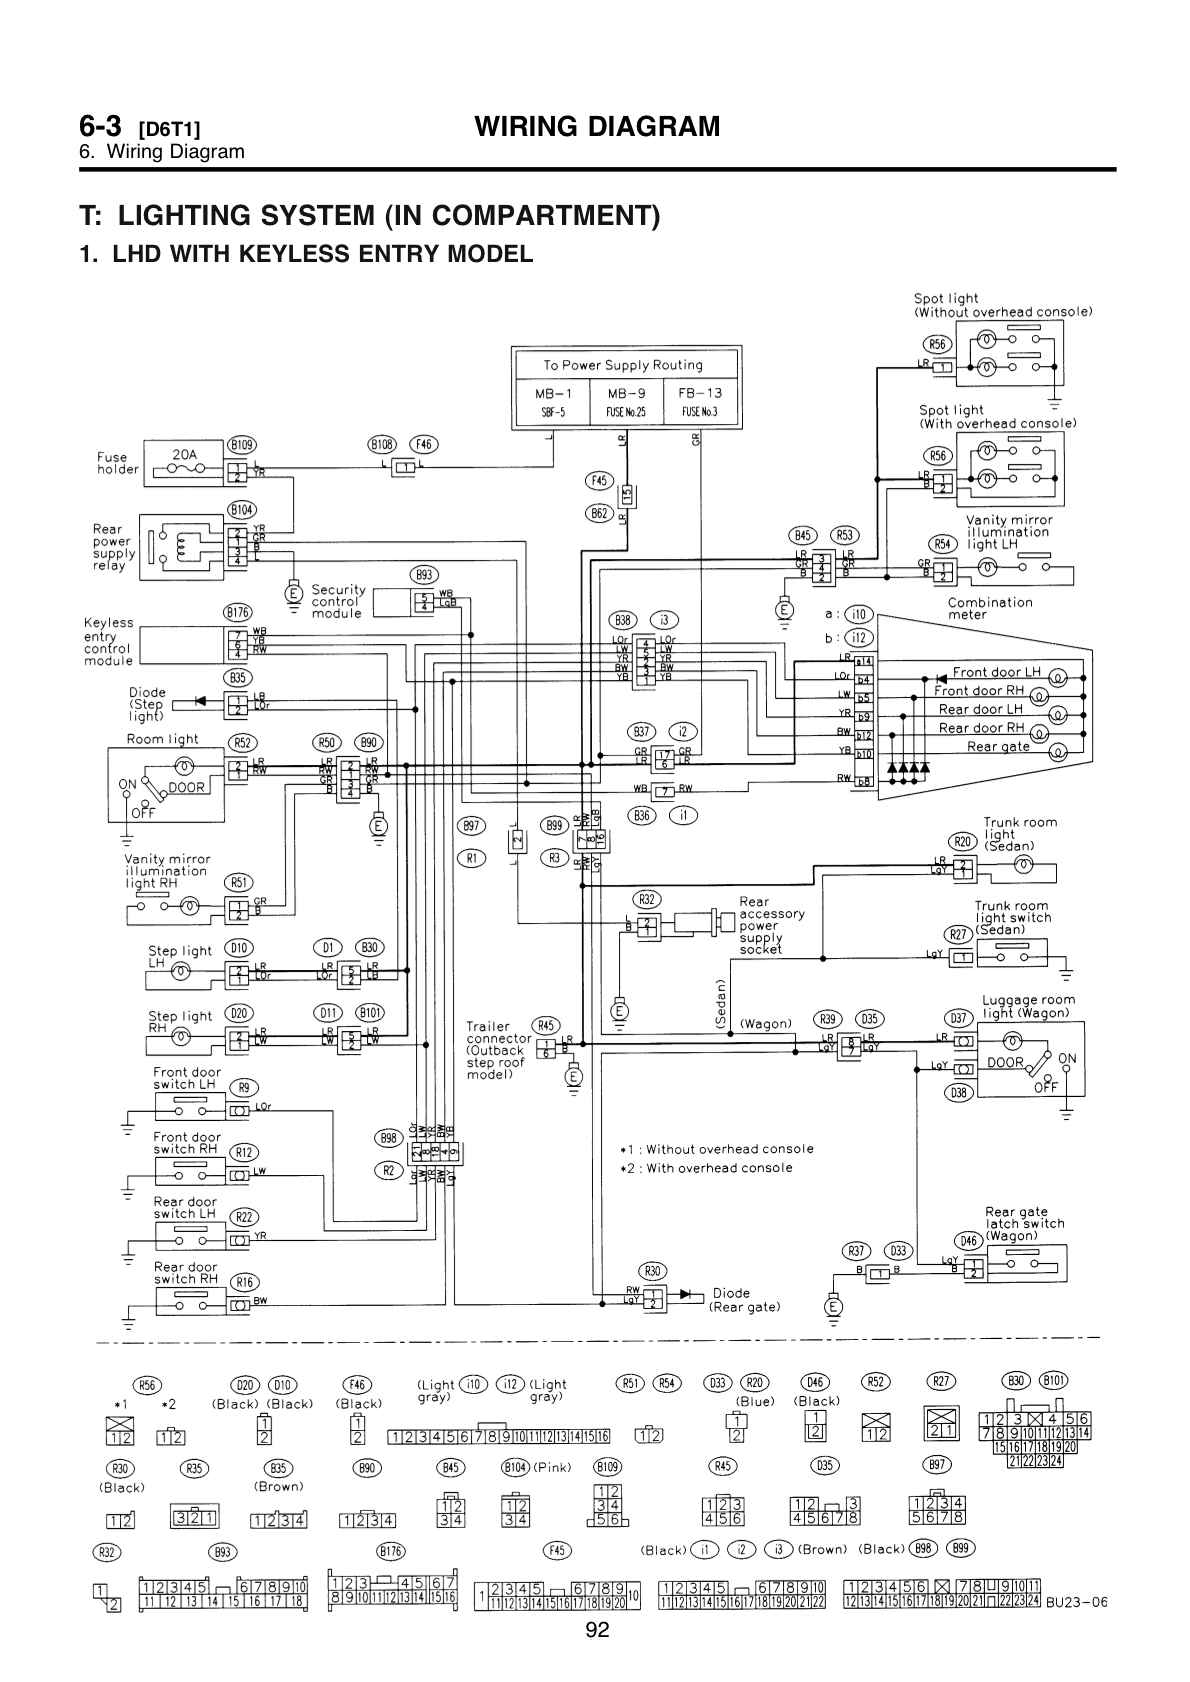 wiring_diagram1 subaru wiring diagrams 1992 subaru legacy heater wiring schematic Subaru BL at couponss.co